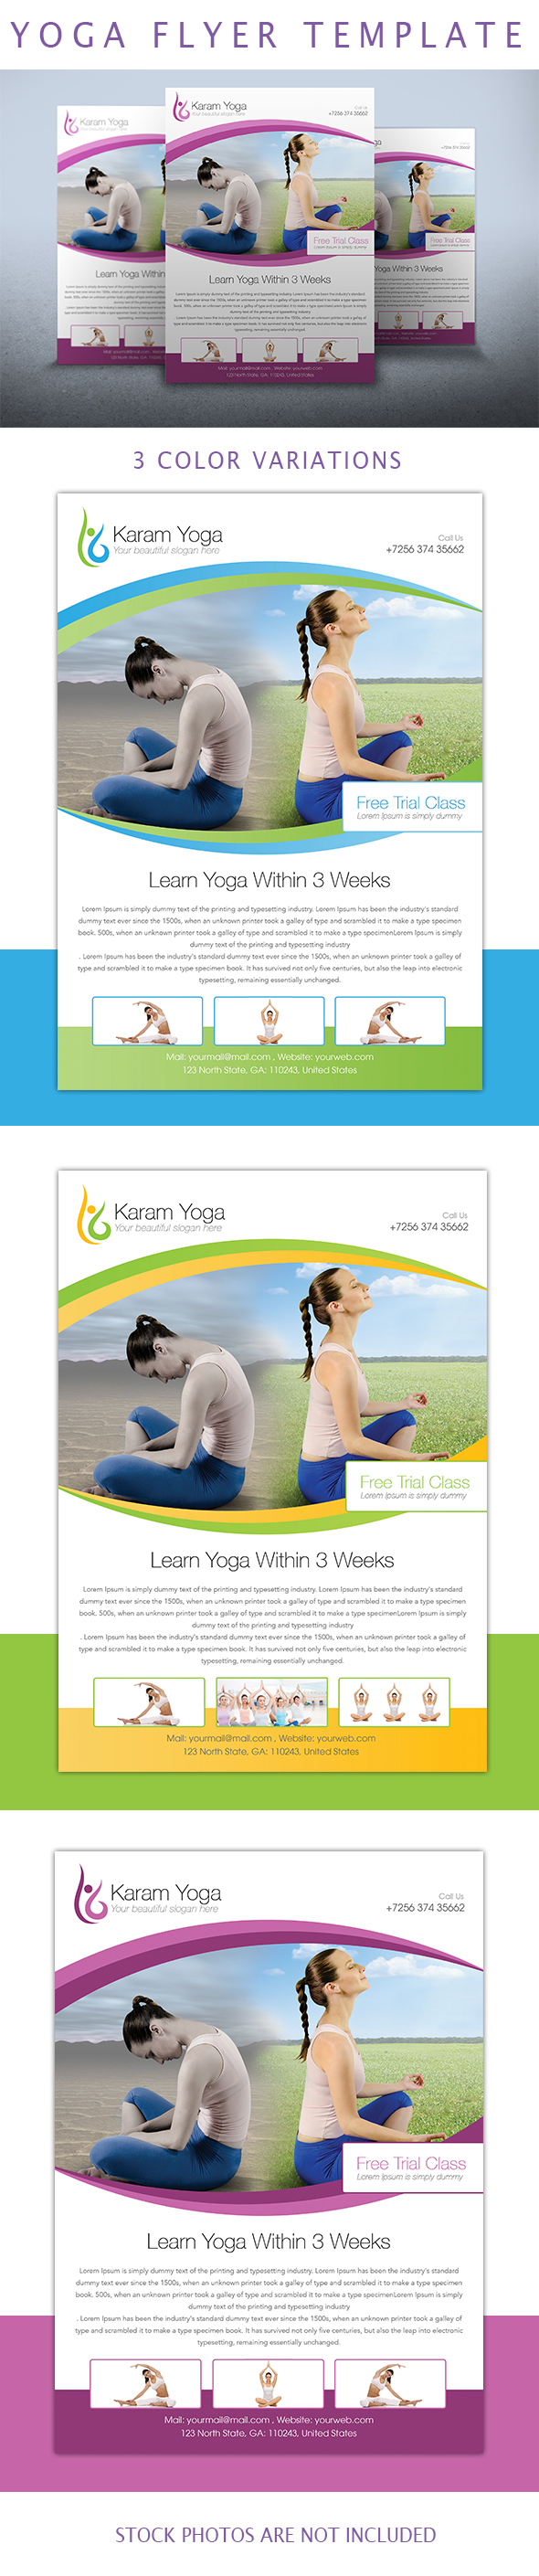 Simple Yoga Flyer Template On Student Show